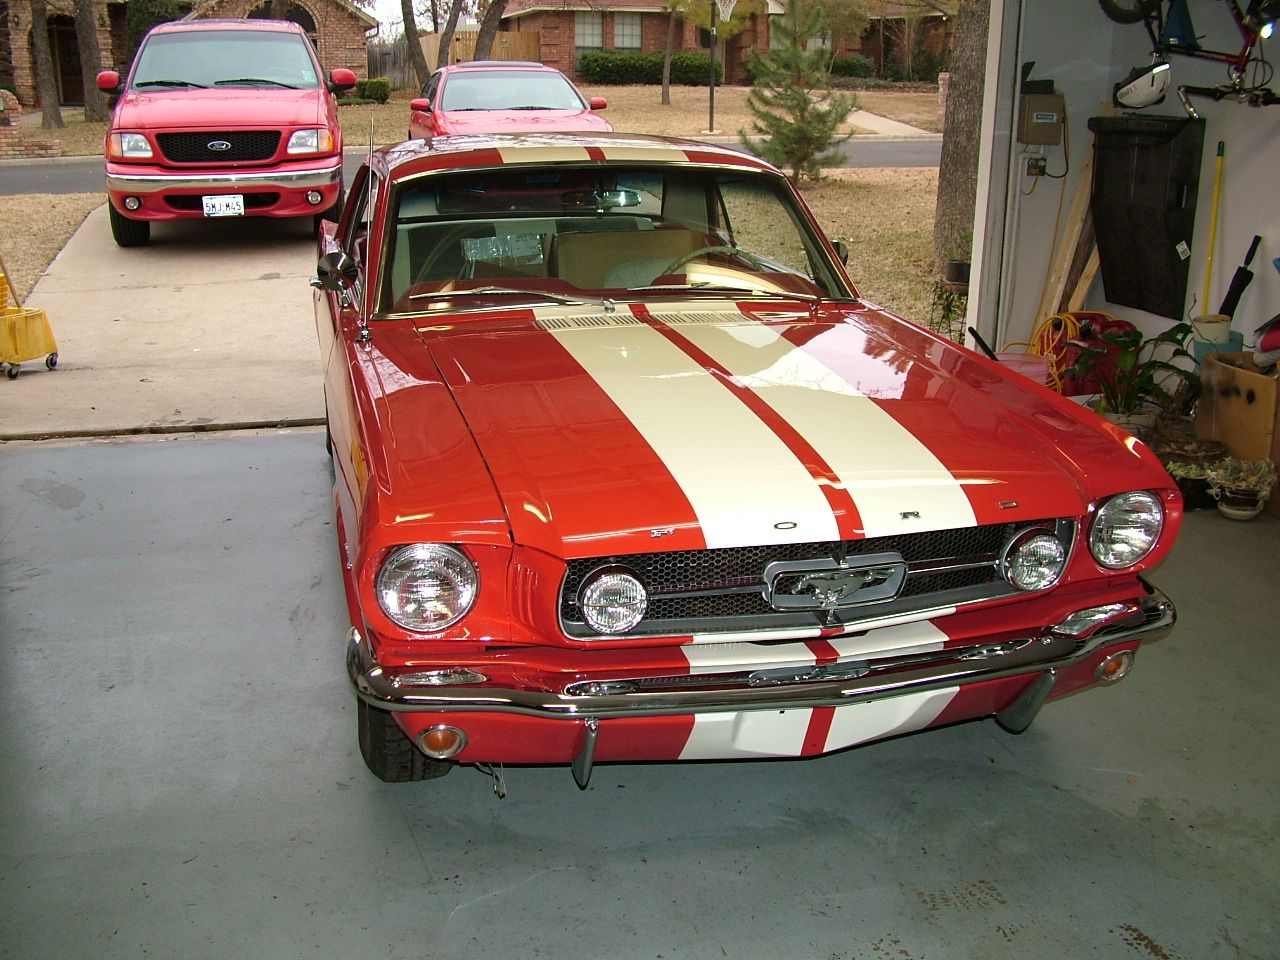 Car ideas on pinterest 66 mustang mustang coupe and mustangs mustang pinterest 66 mustang mustang coupe and coupe